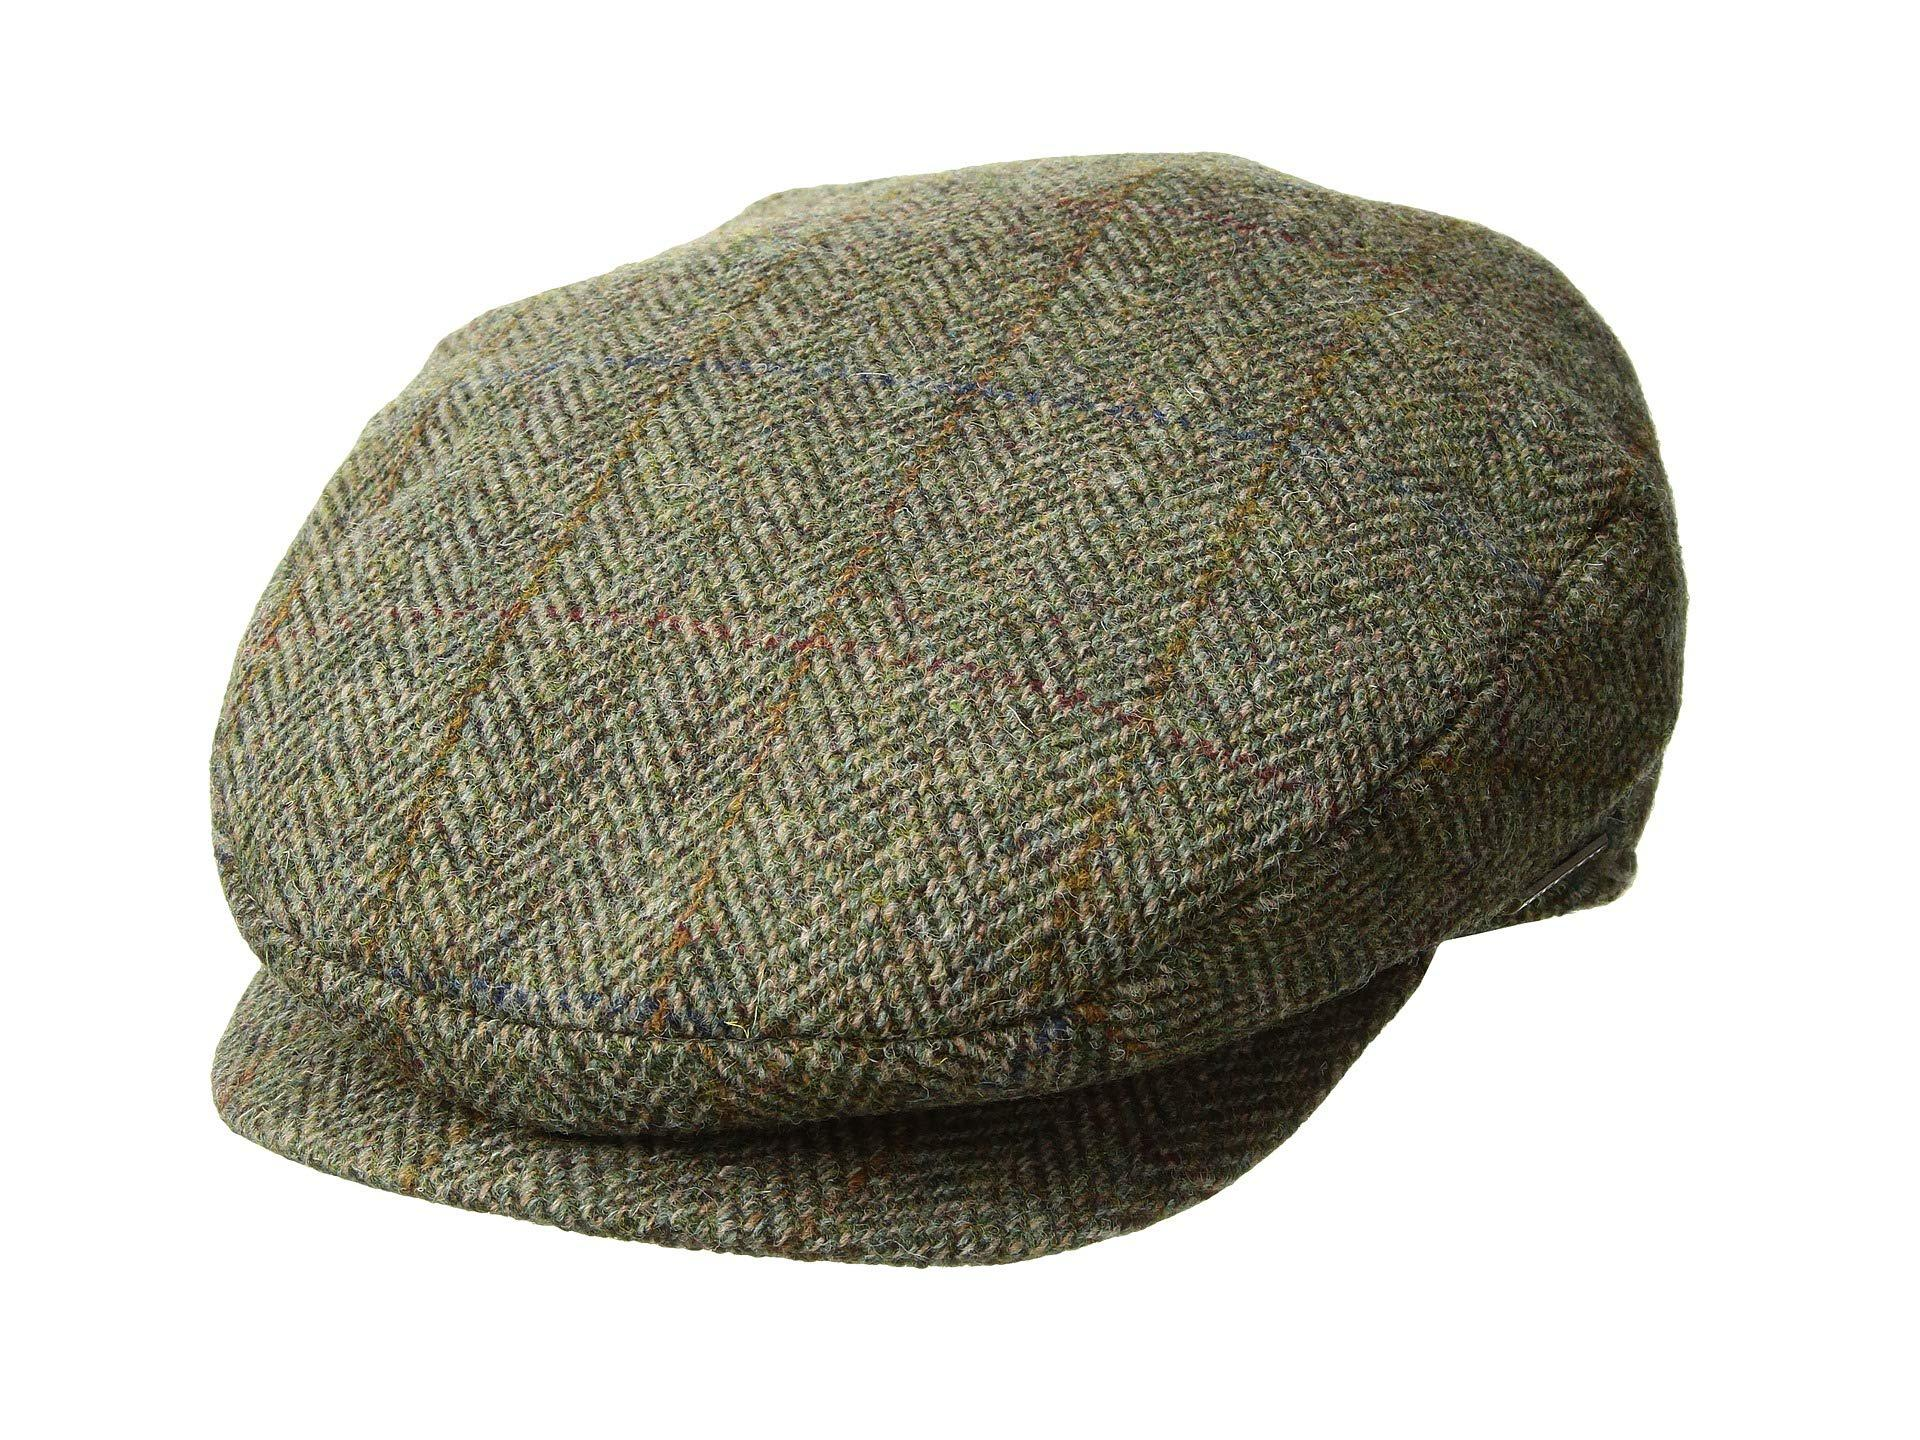 d994272afb667 Stetson Harris Tweed Ivy (olive) Traditional Hats in Green for Men ...